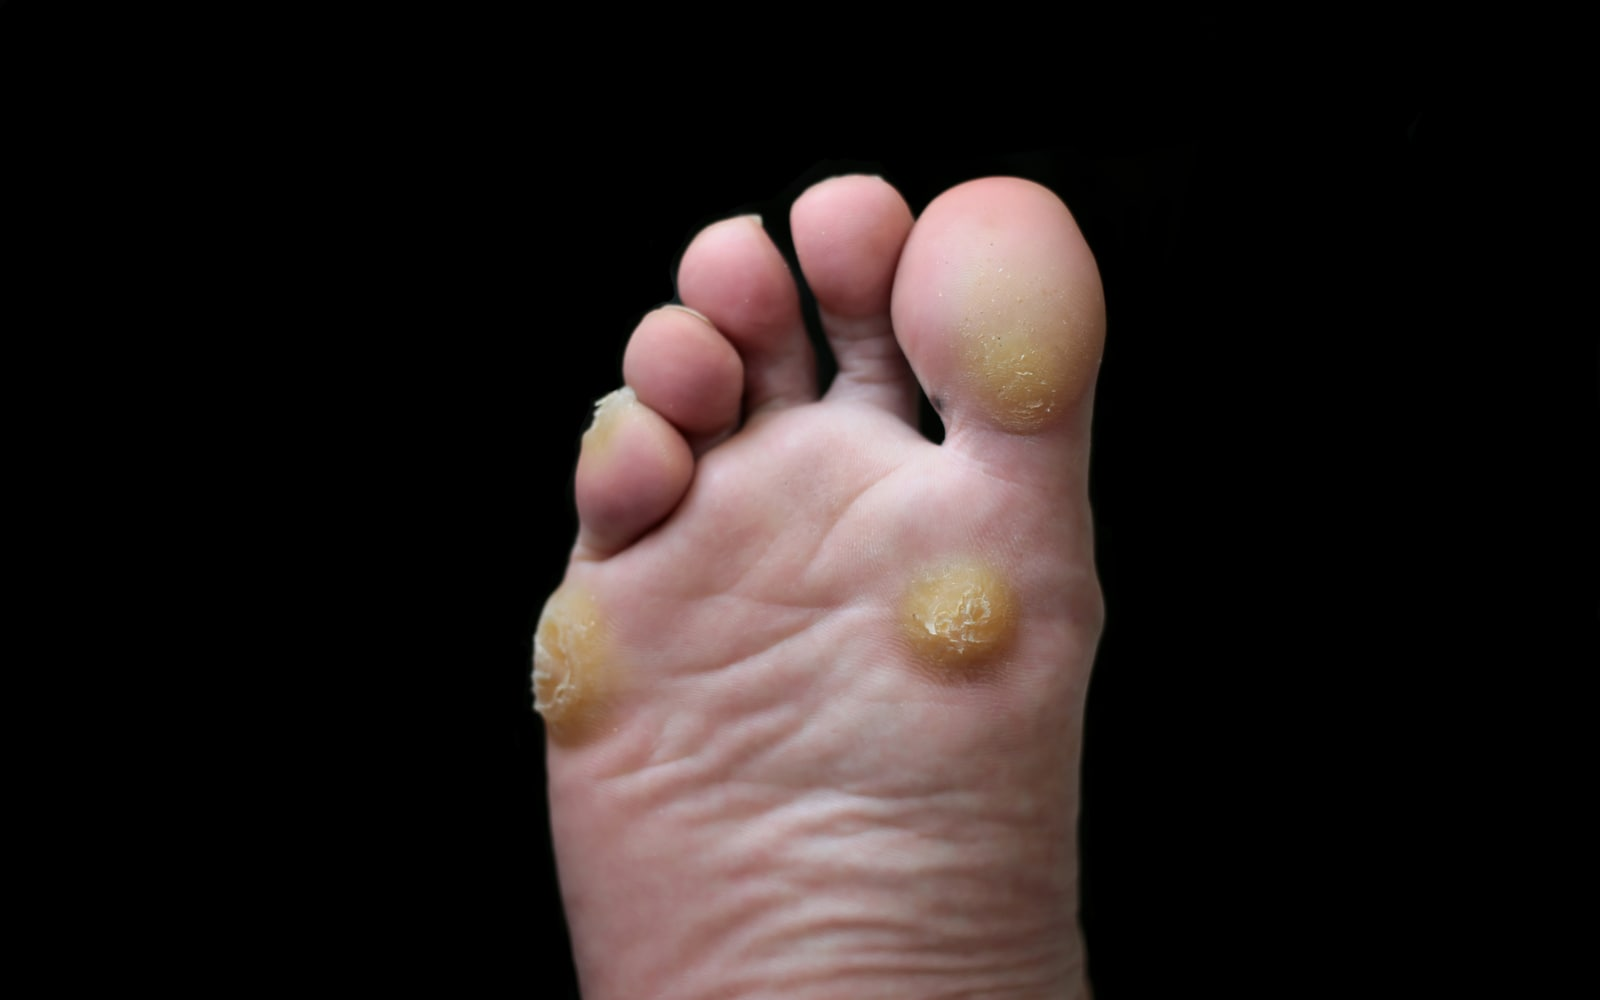 A foot with prominent corns